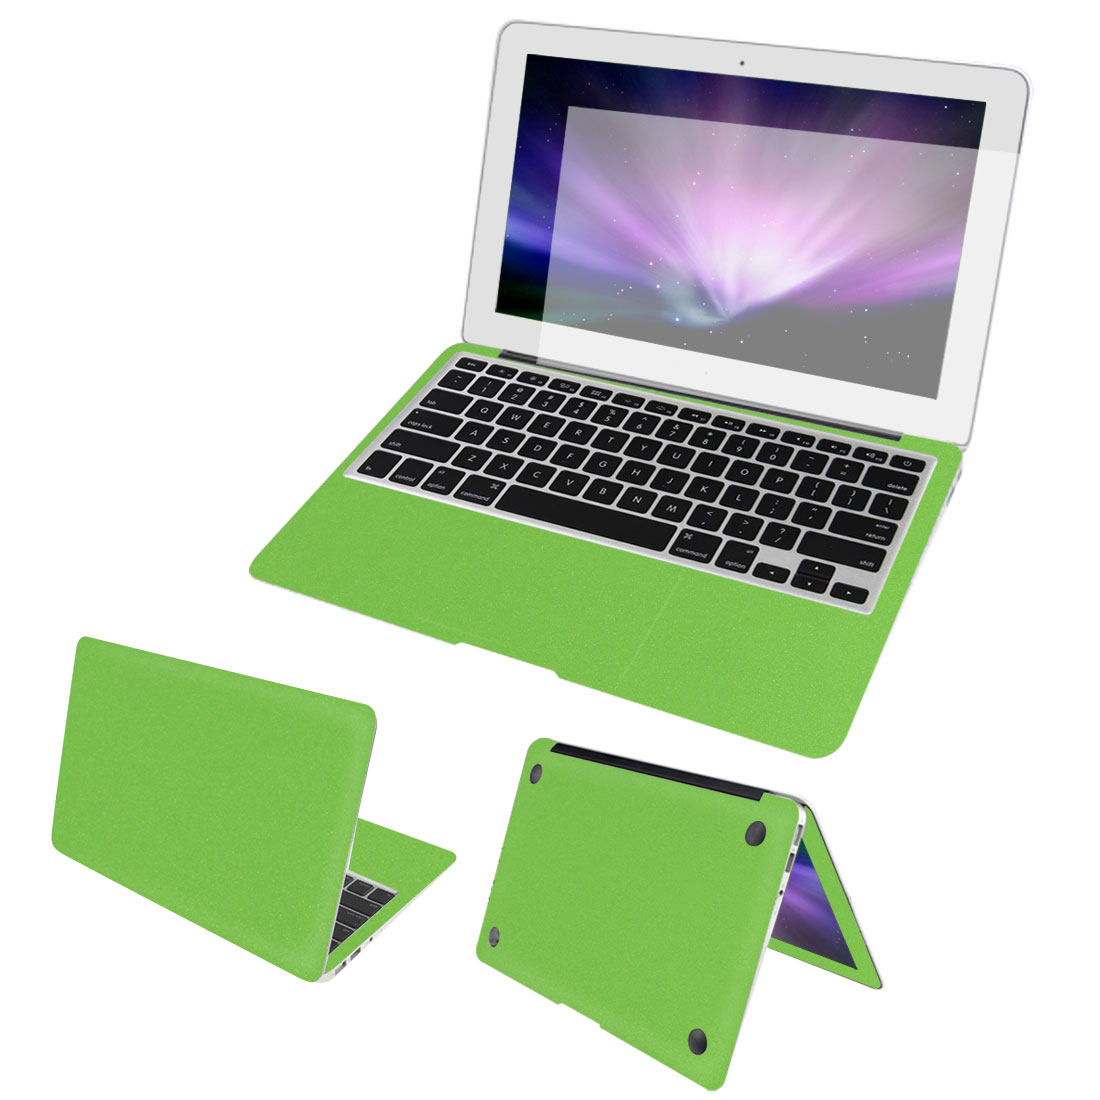 Full Body Wrap Guard Decal Green + Screen Film + Dust Cap for Macbook Air 13""